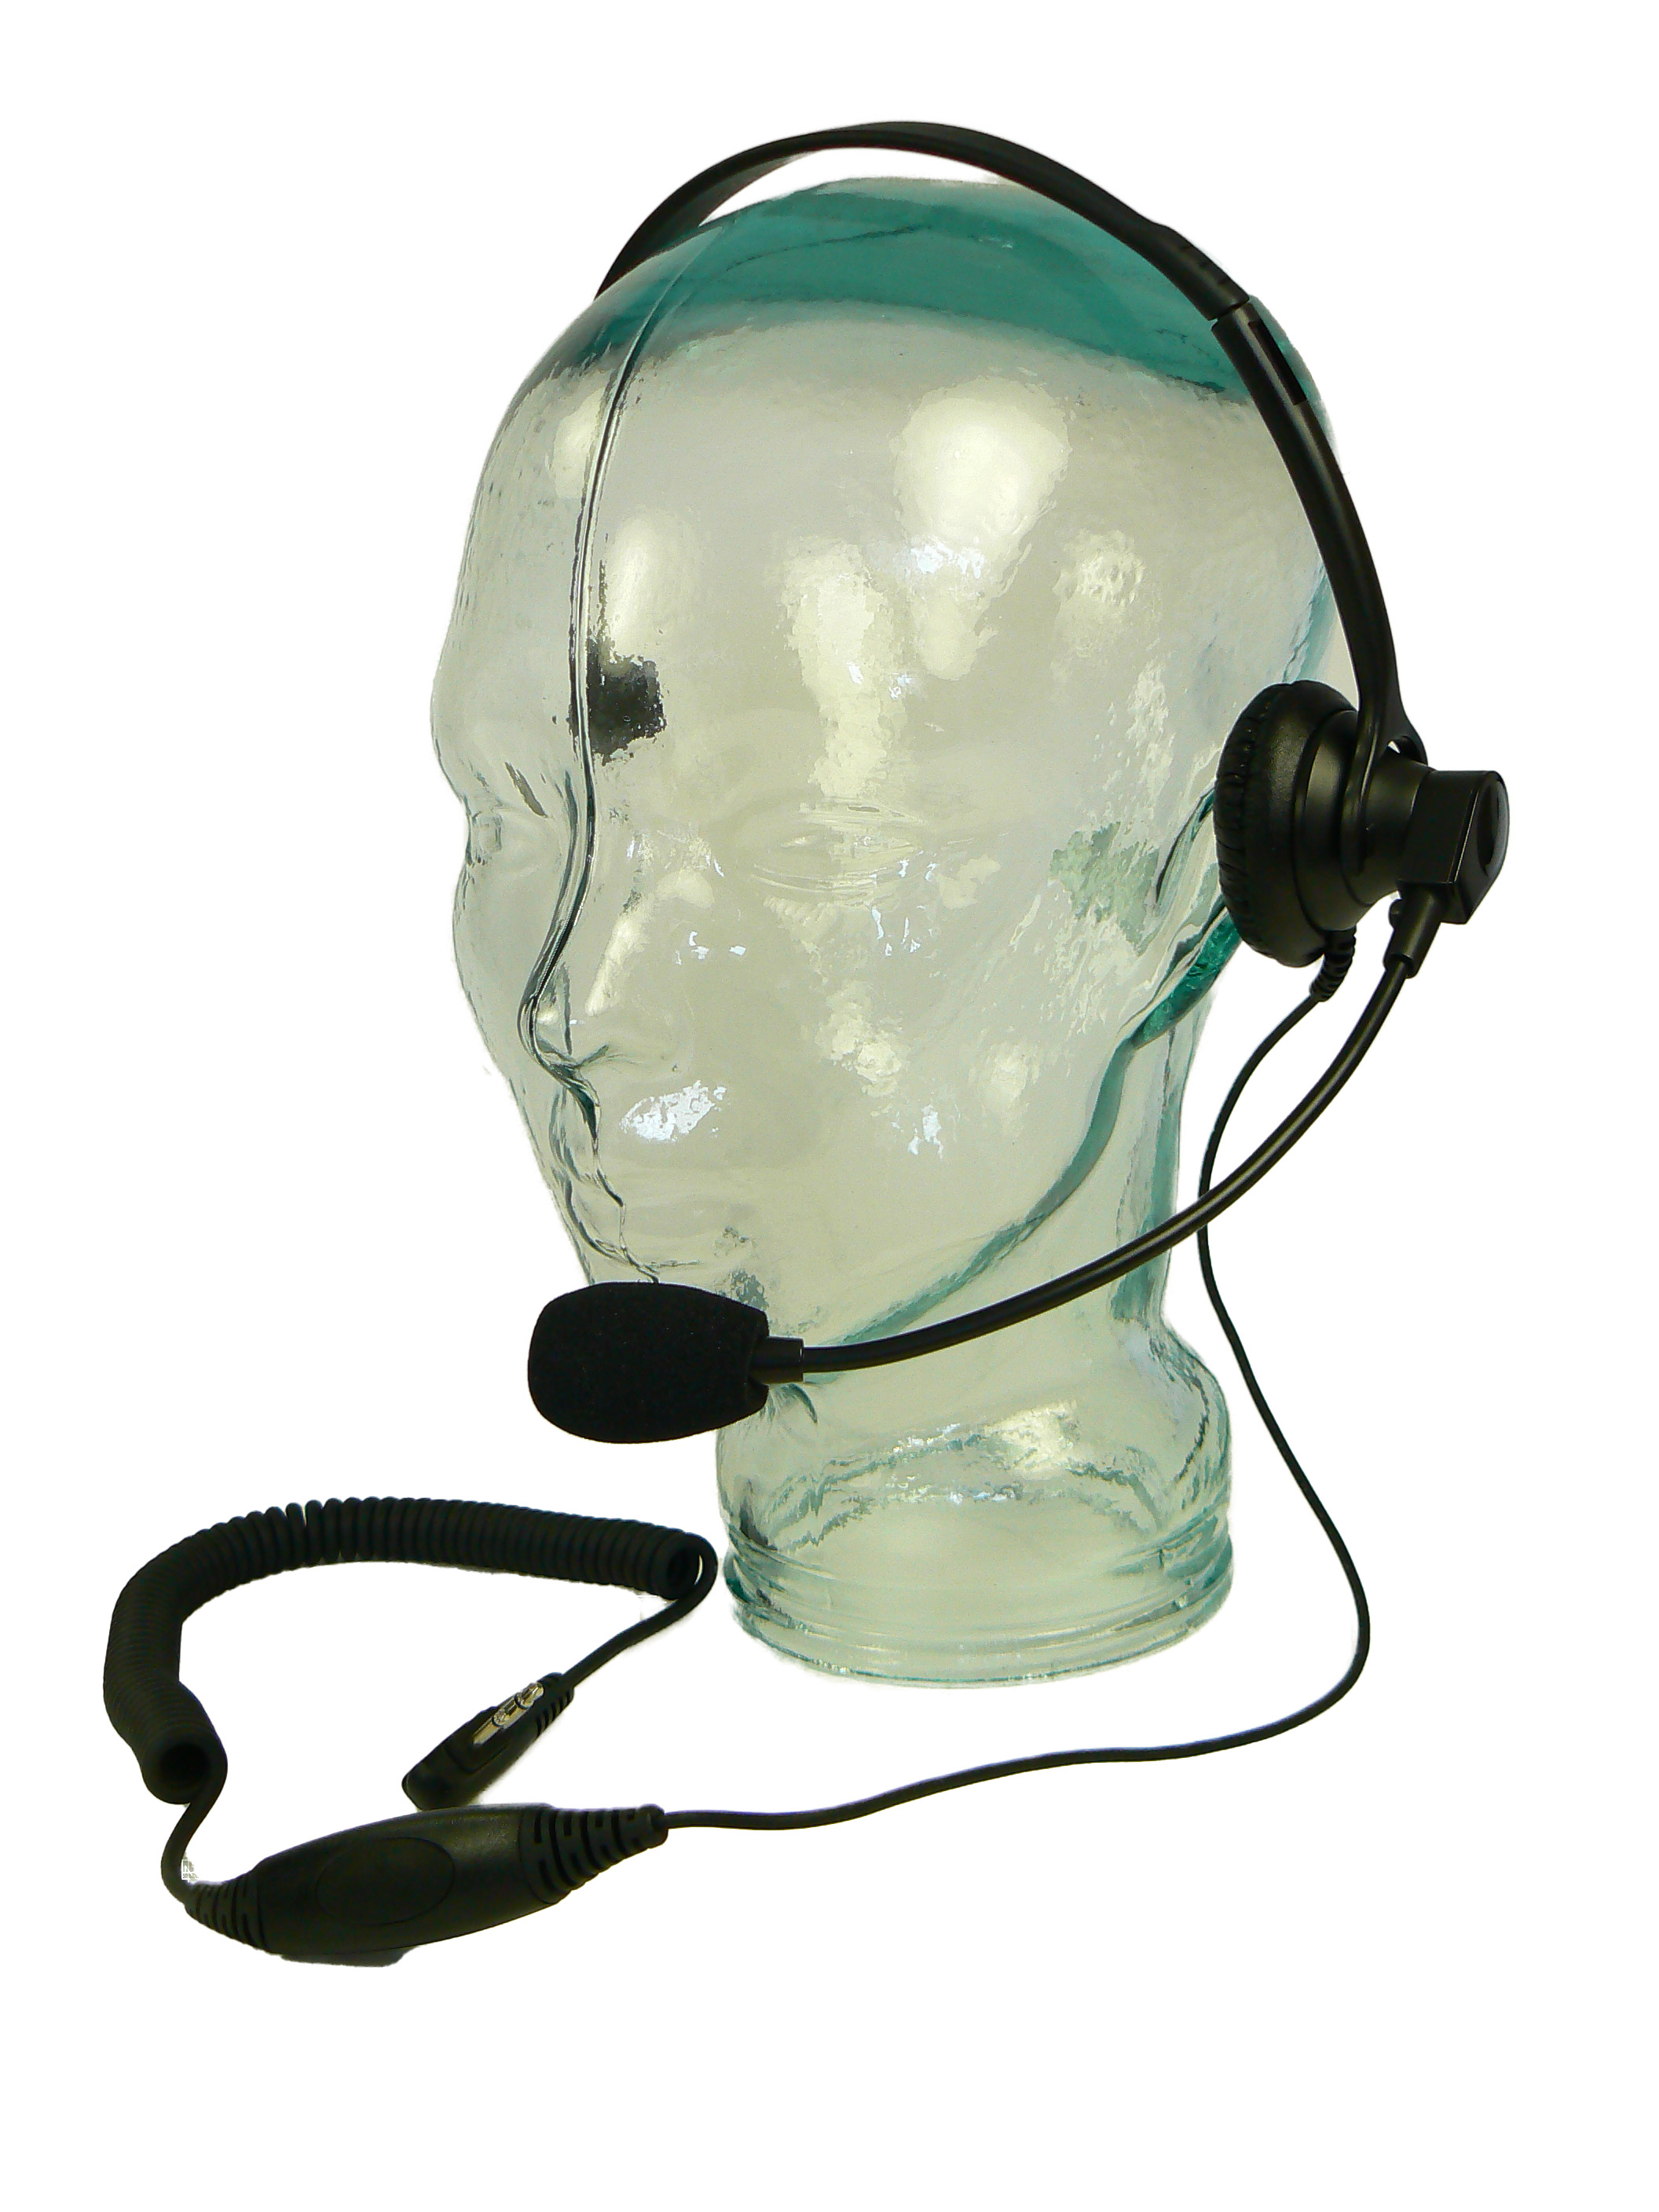 Single muff headset with microphone for Radio